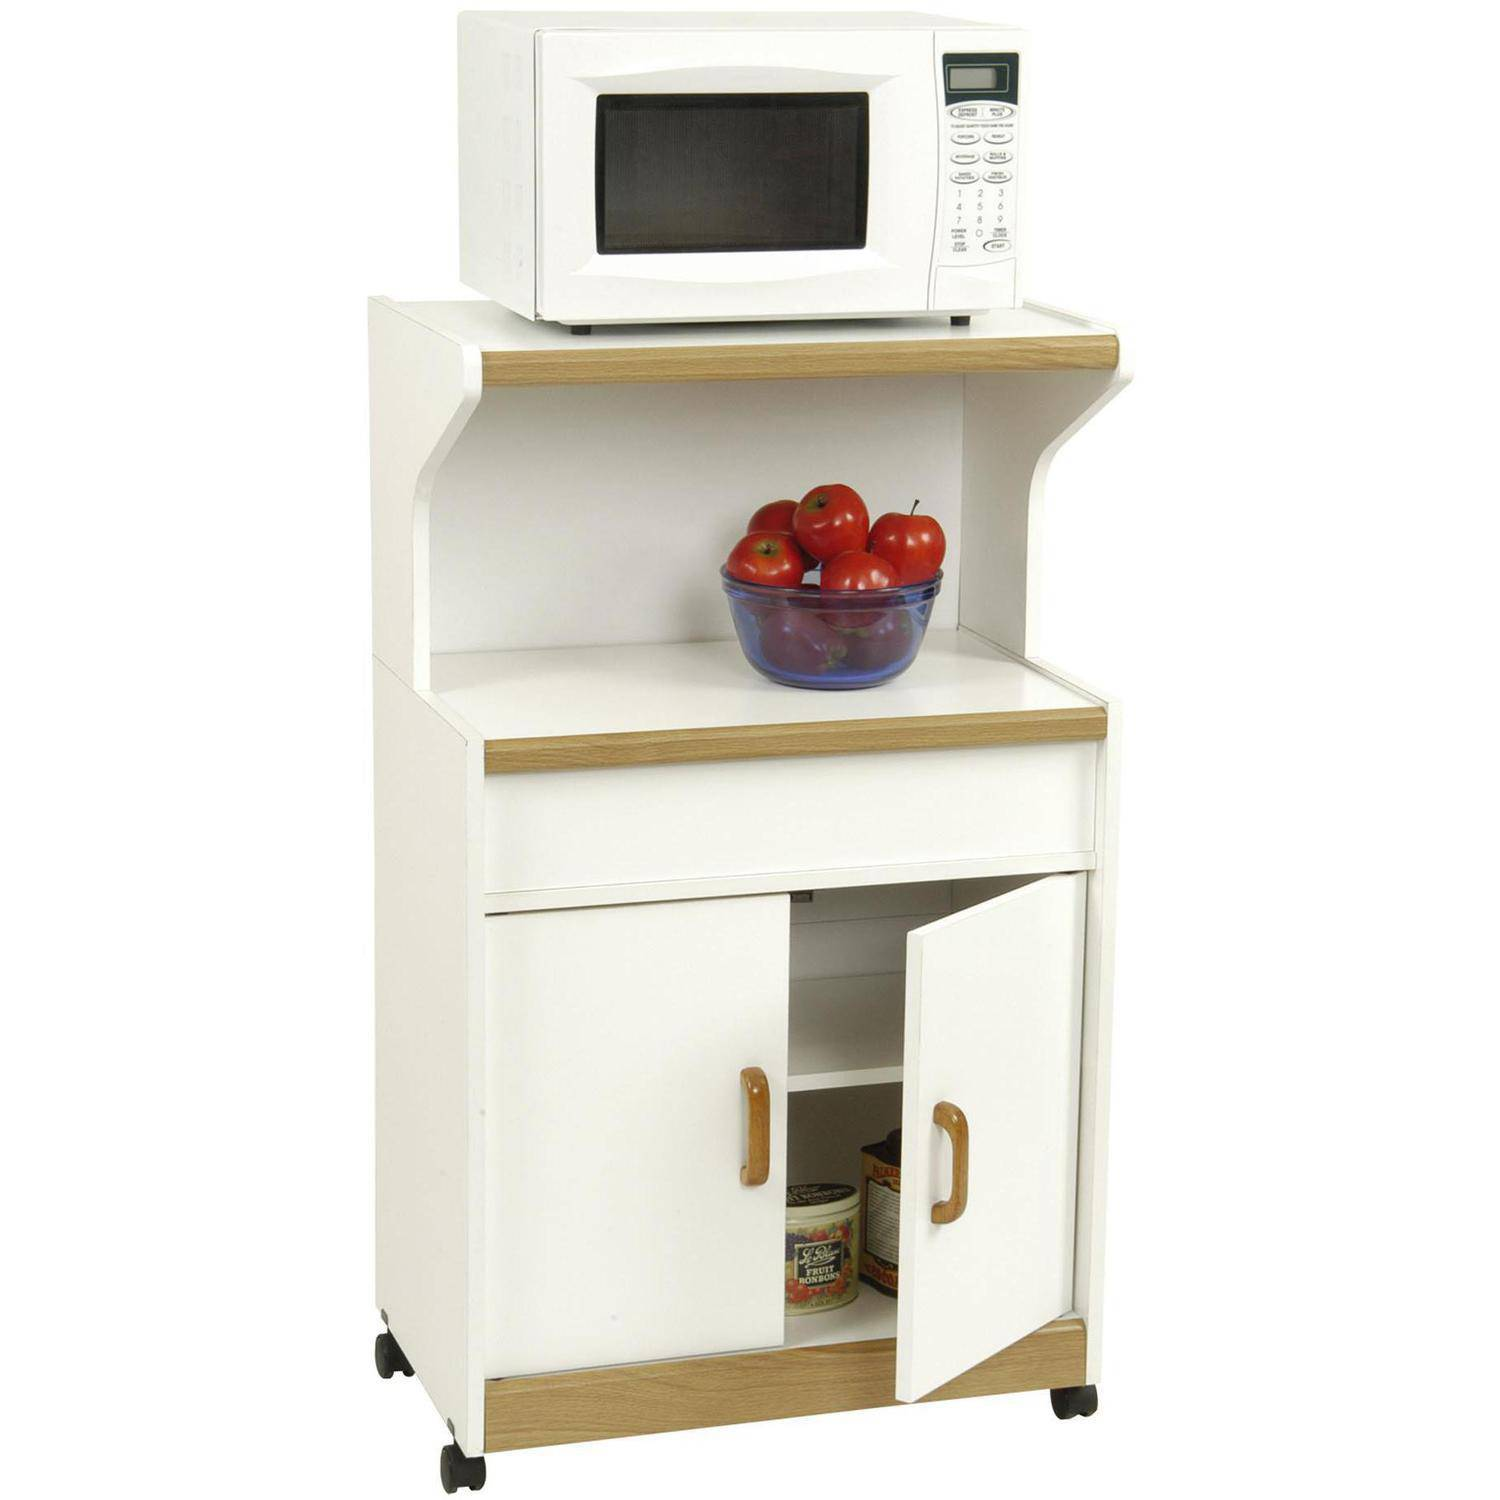 Double Pantry U0026 Microwave Cabinet With Shelves Value Bundle   Walmart.com